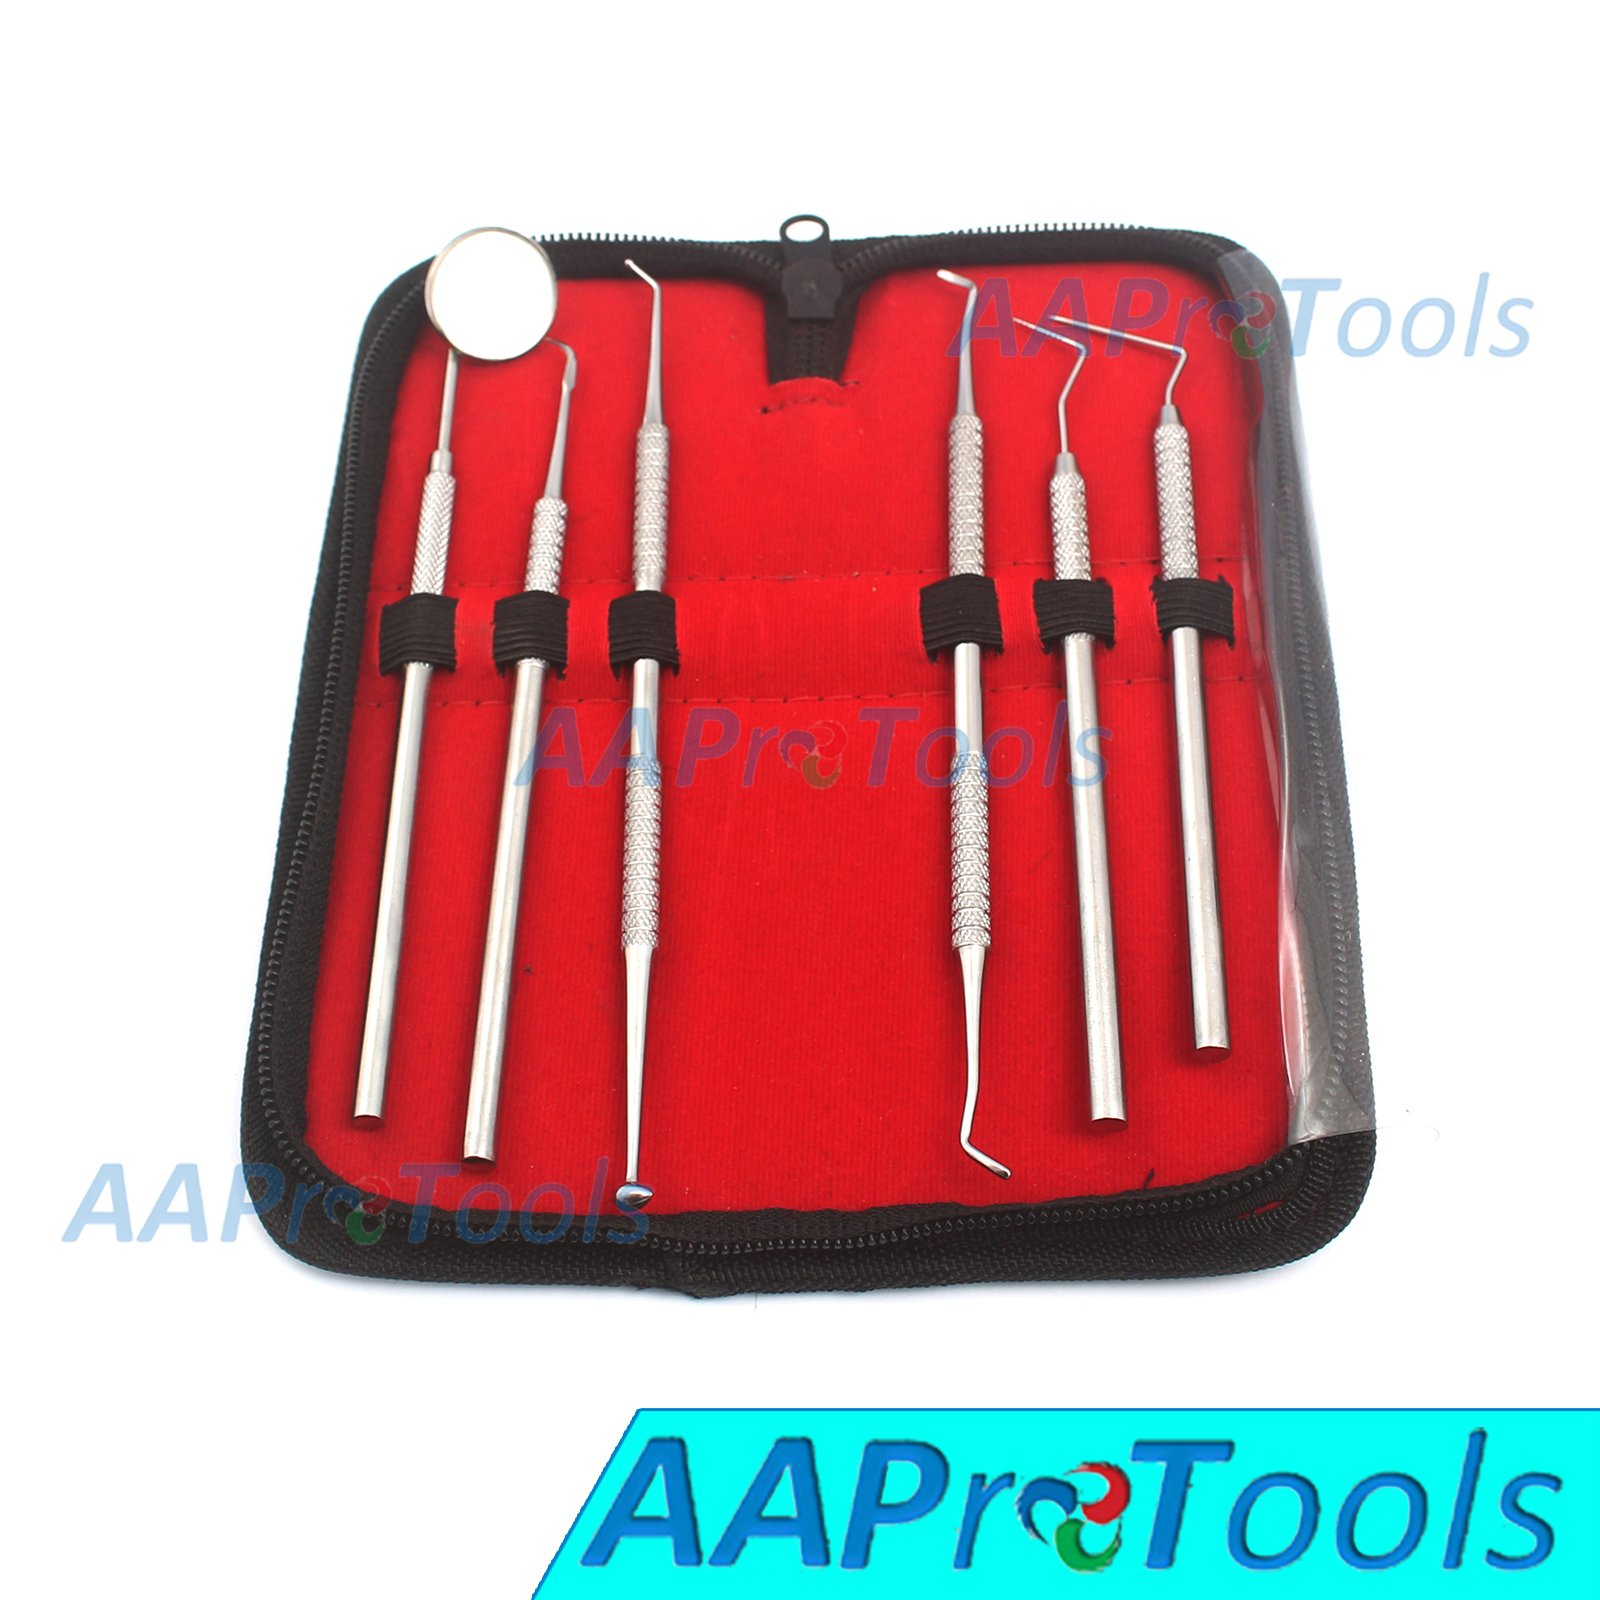 AAPROTOOLS DENTAL DENTIST PICK TOOL KIT 6 PIECE A+ QUALITY